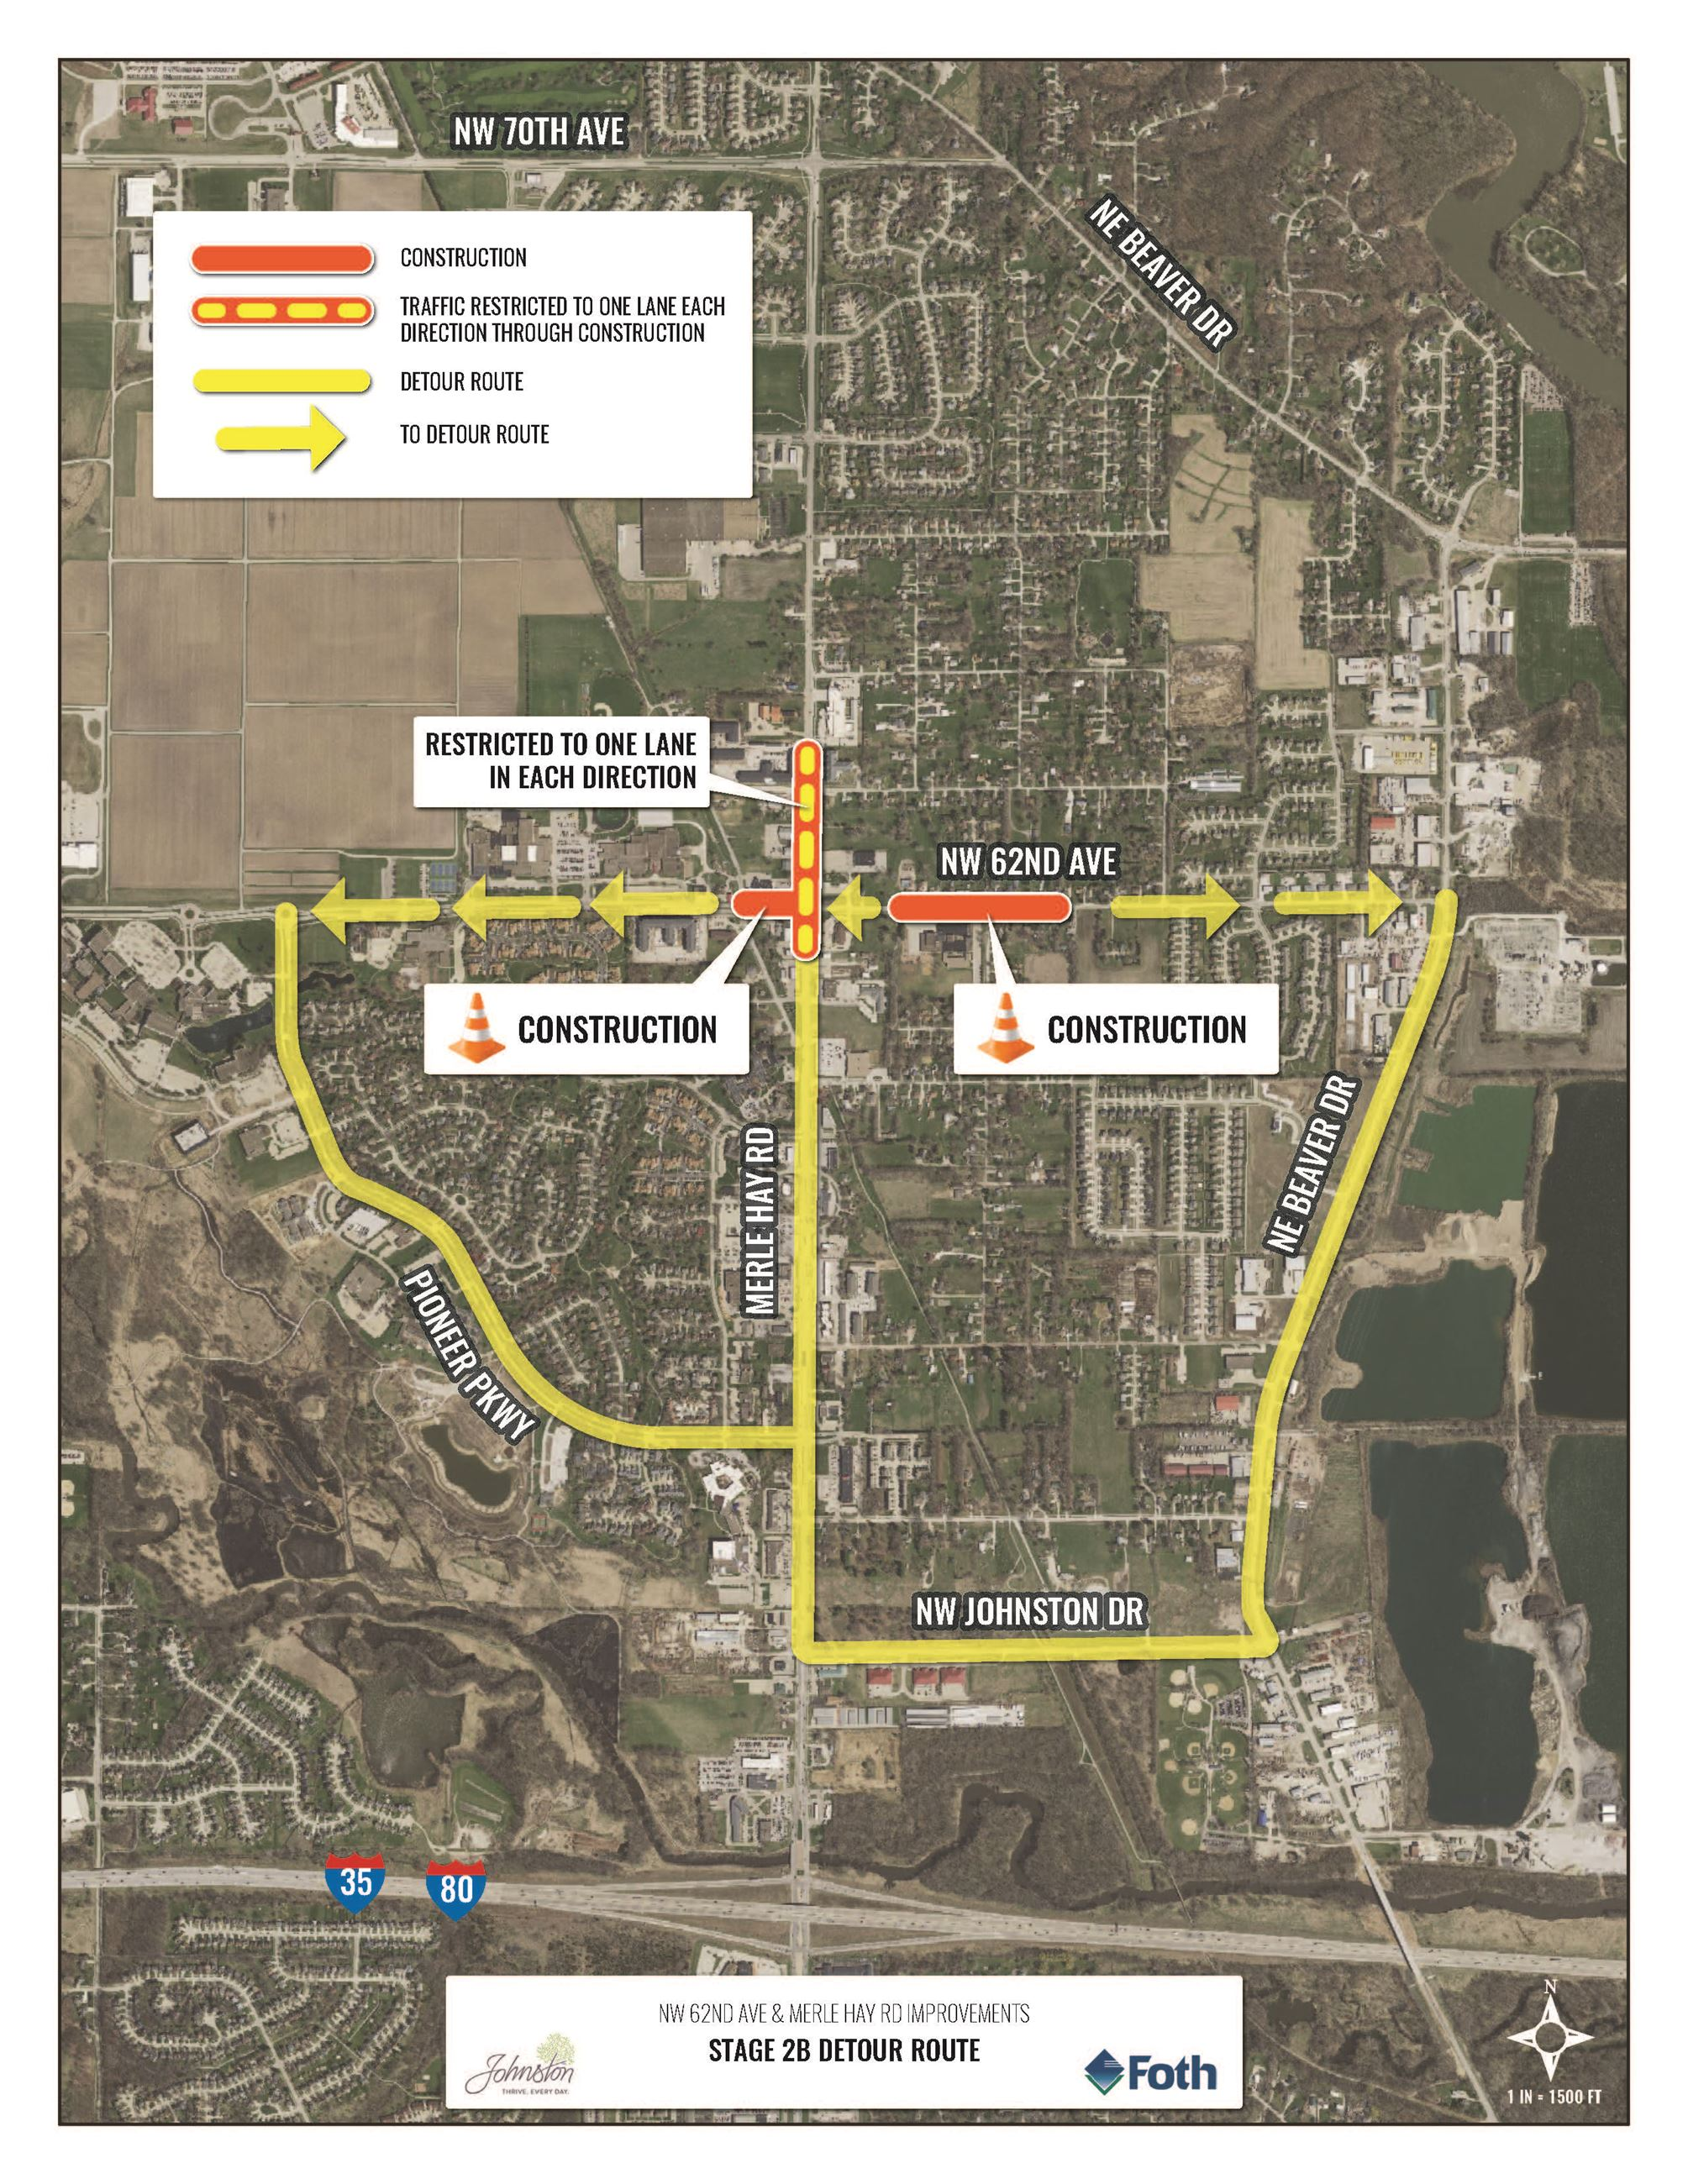 NW 62nd and Merle Hay Overall Stage 2B Detour Map_5.4.20